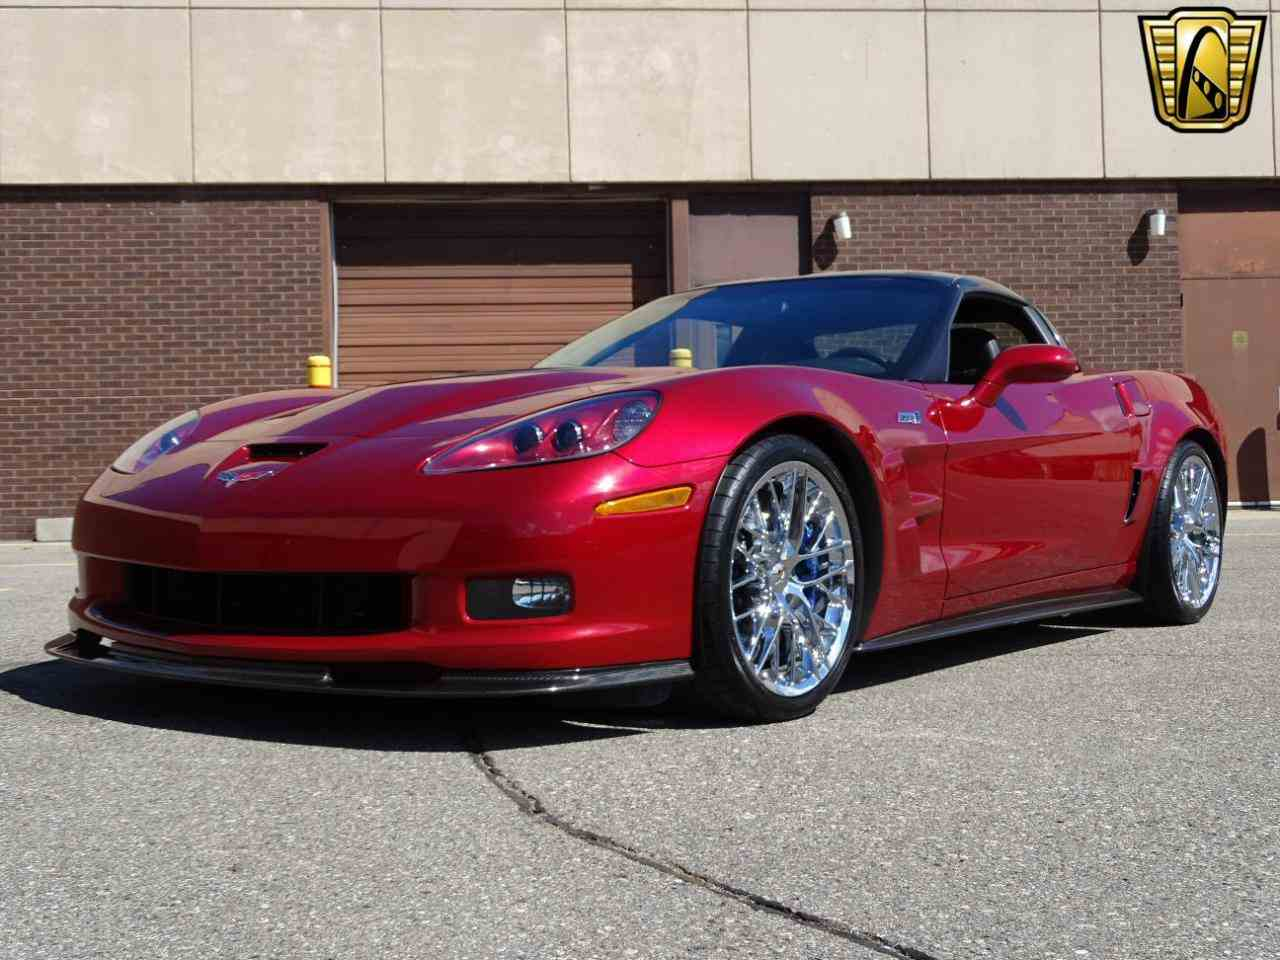 Large Picture of 2010 Chevrolet Corvette located in Dearborn Michigan - $78,000.00 Offered by Gateway Classic Cars - Detroit - L8QM